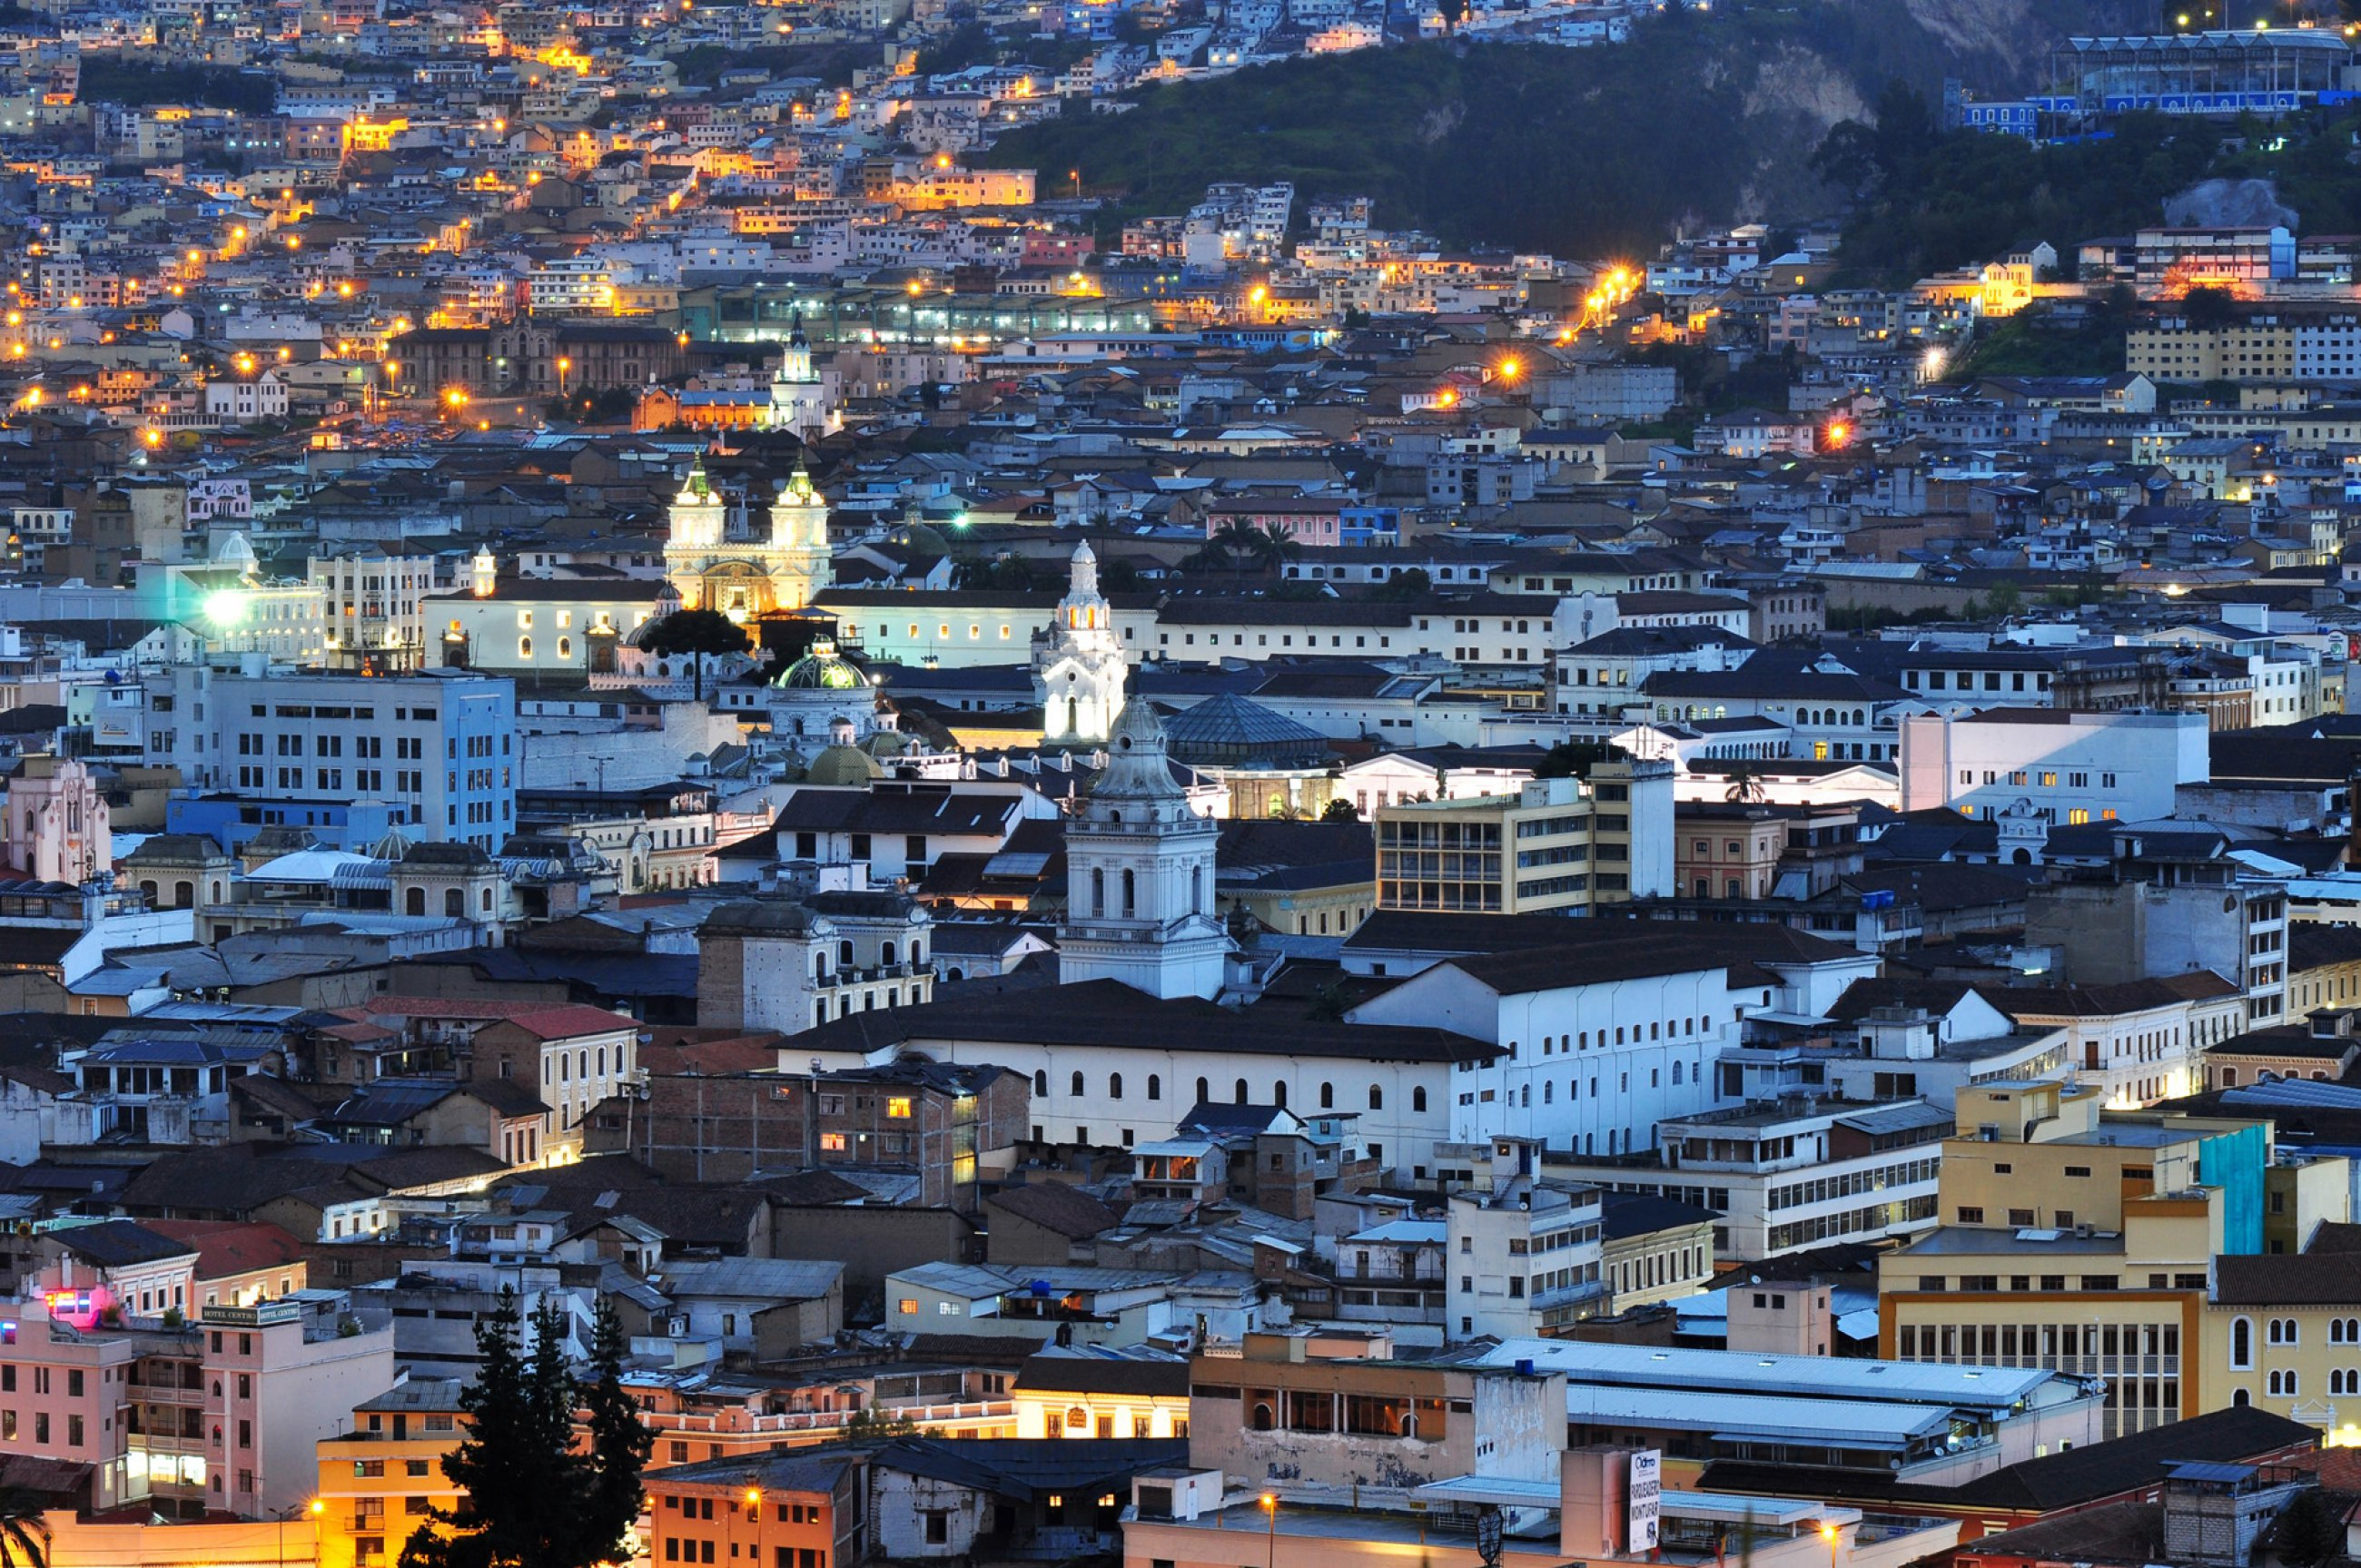 https://bubo.sk/uploads/galleries/16334/ekvador-quito-shutterstock-195064703.jpg